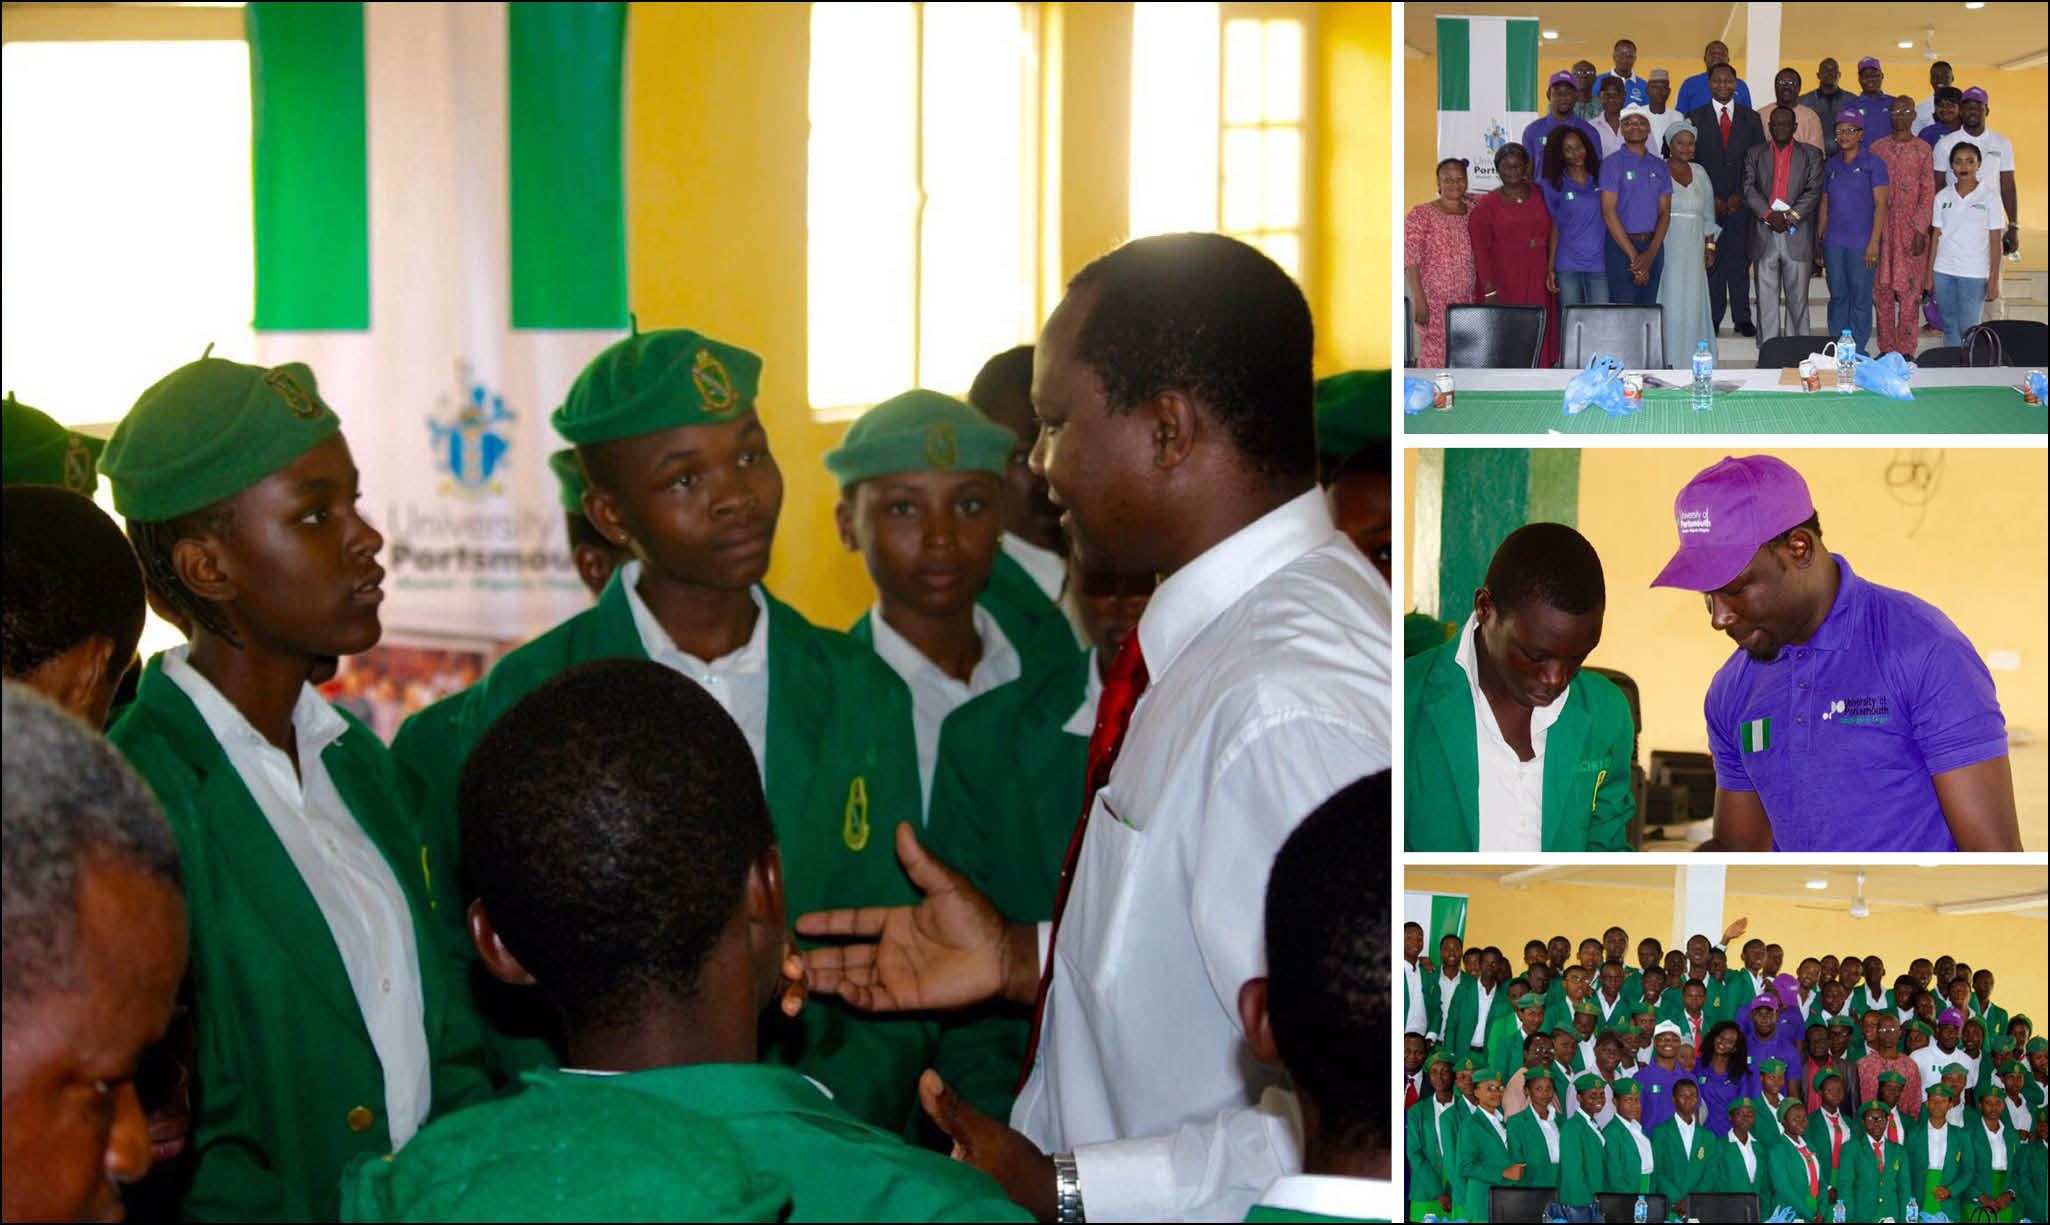 Career talks at the Federal Government Academy in Suleja, Nigeria